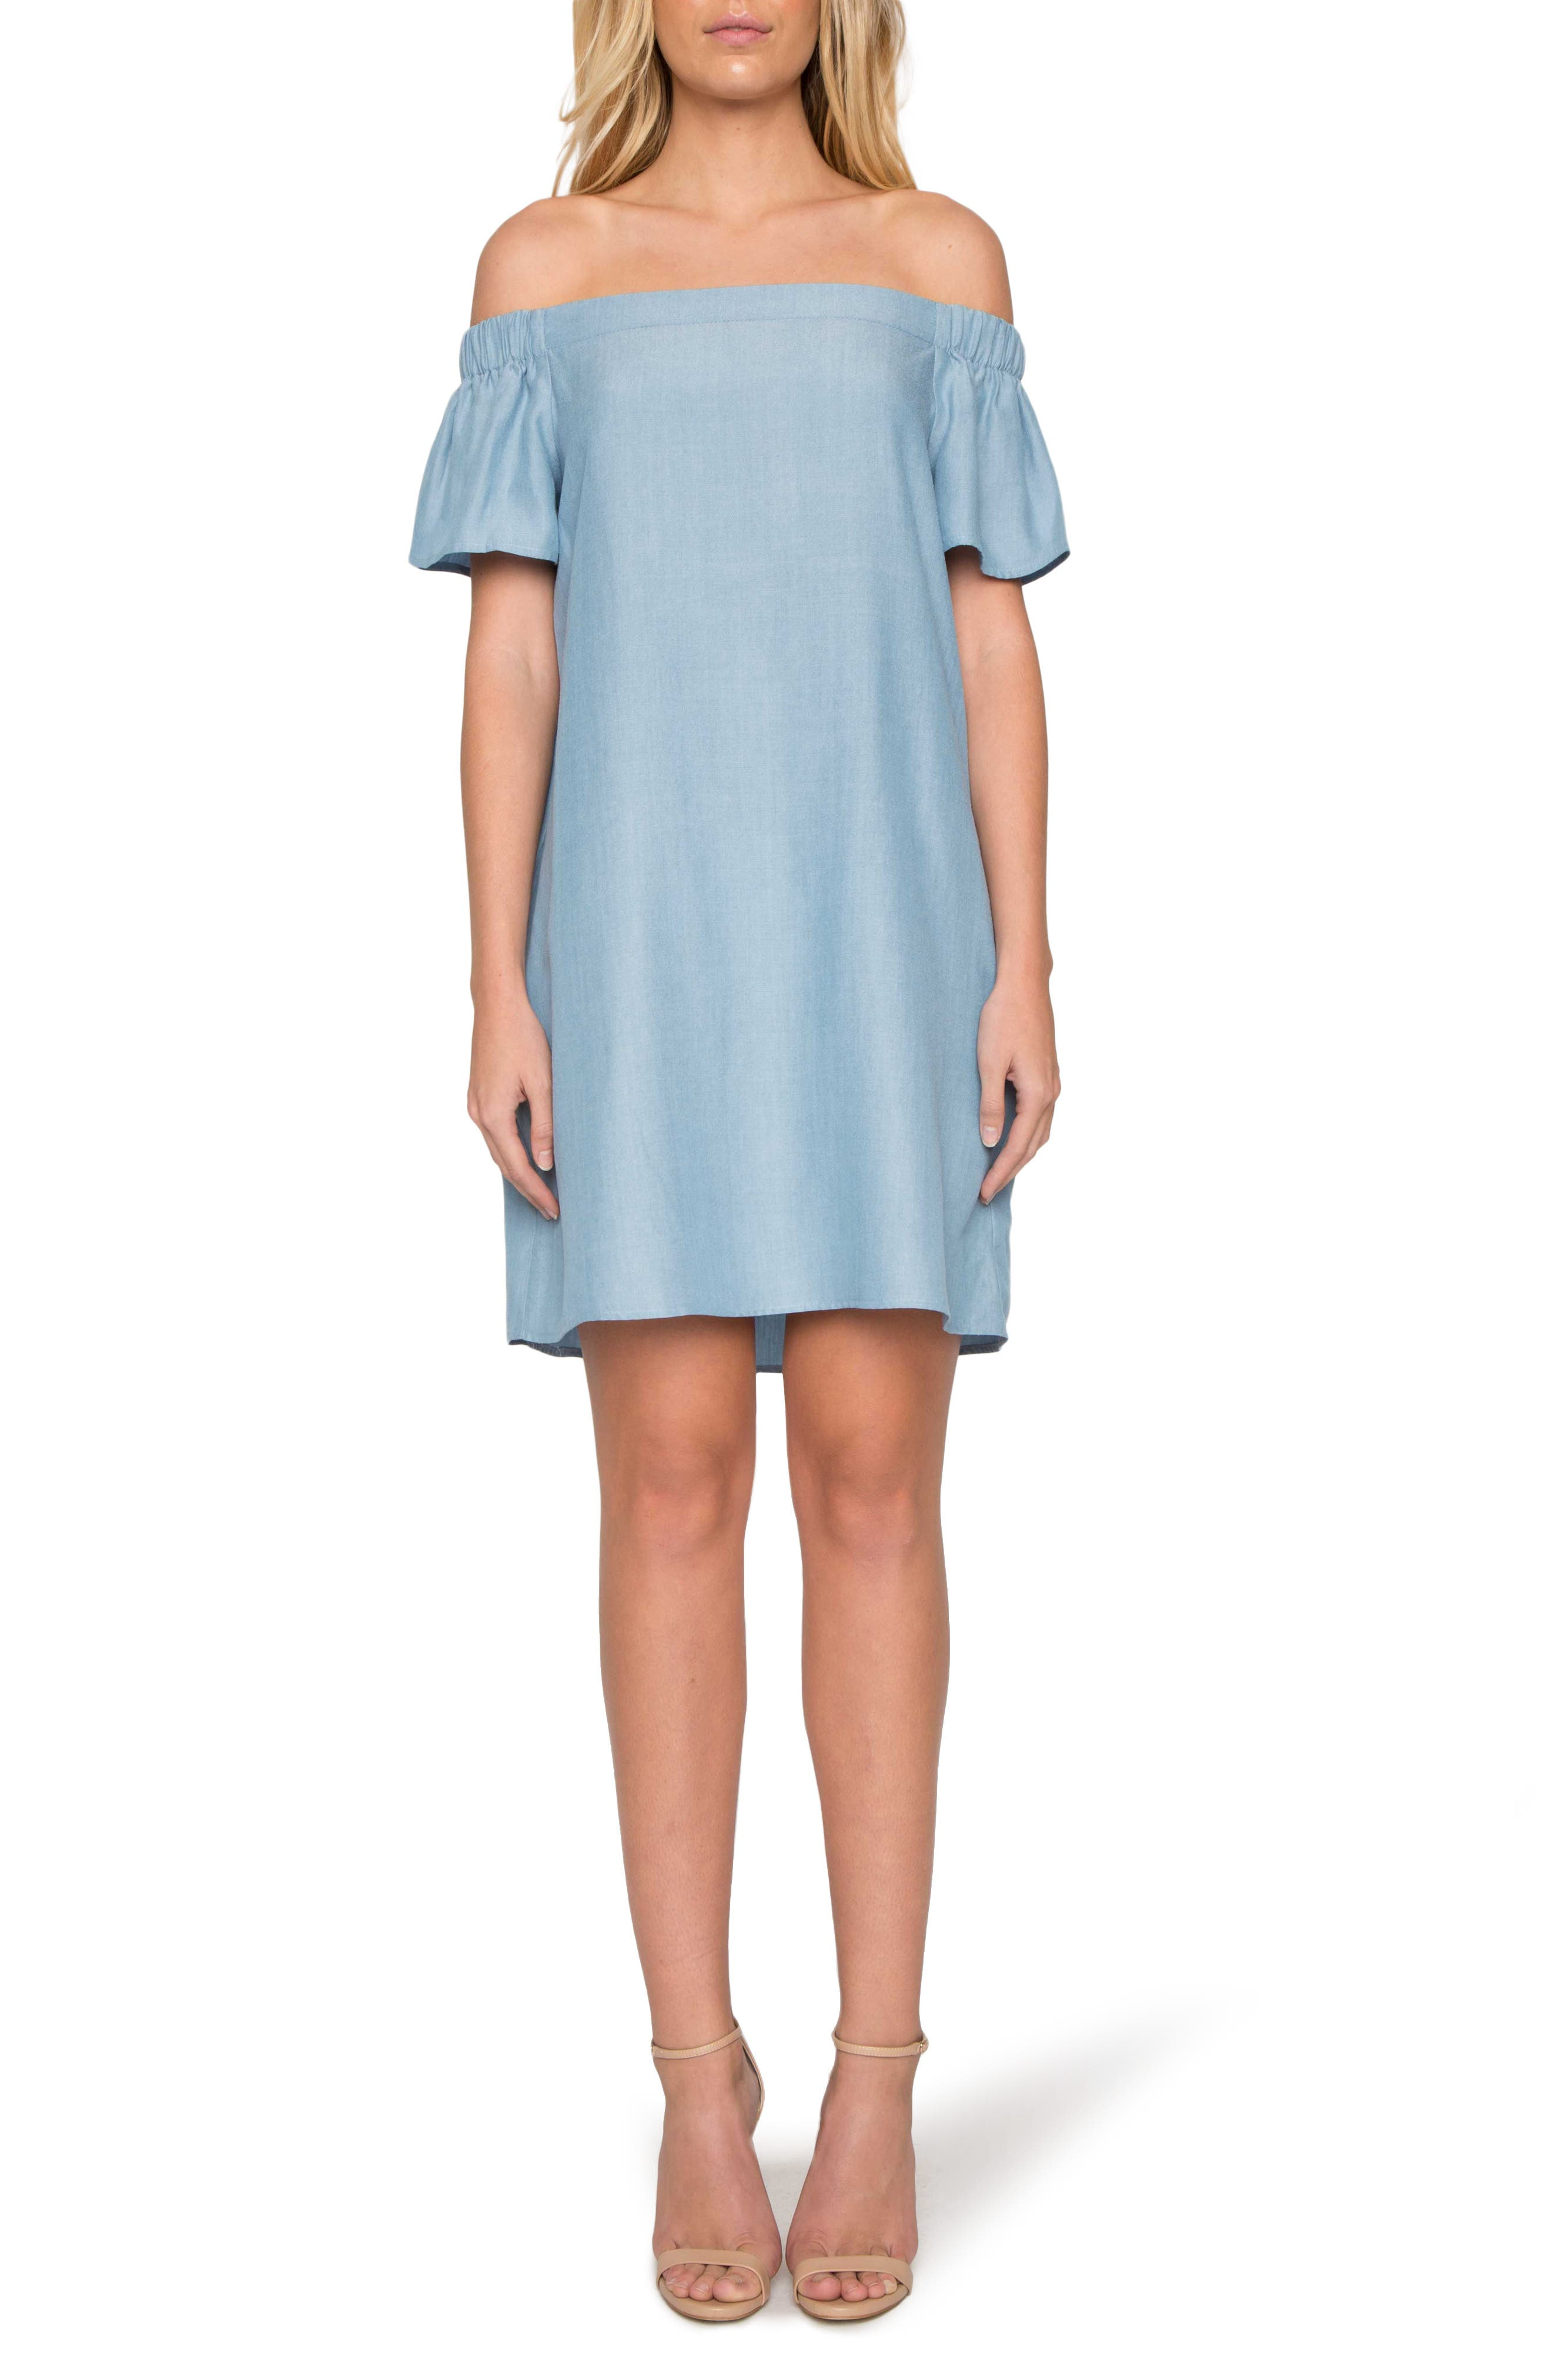 WILLOW & CLAY, Off the Shoulder Minidress, Main thumbnail 1, color, 453